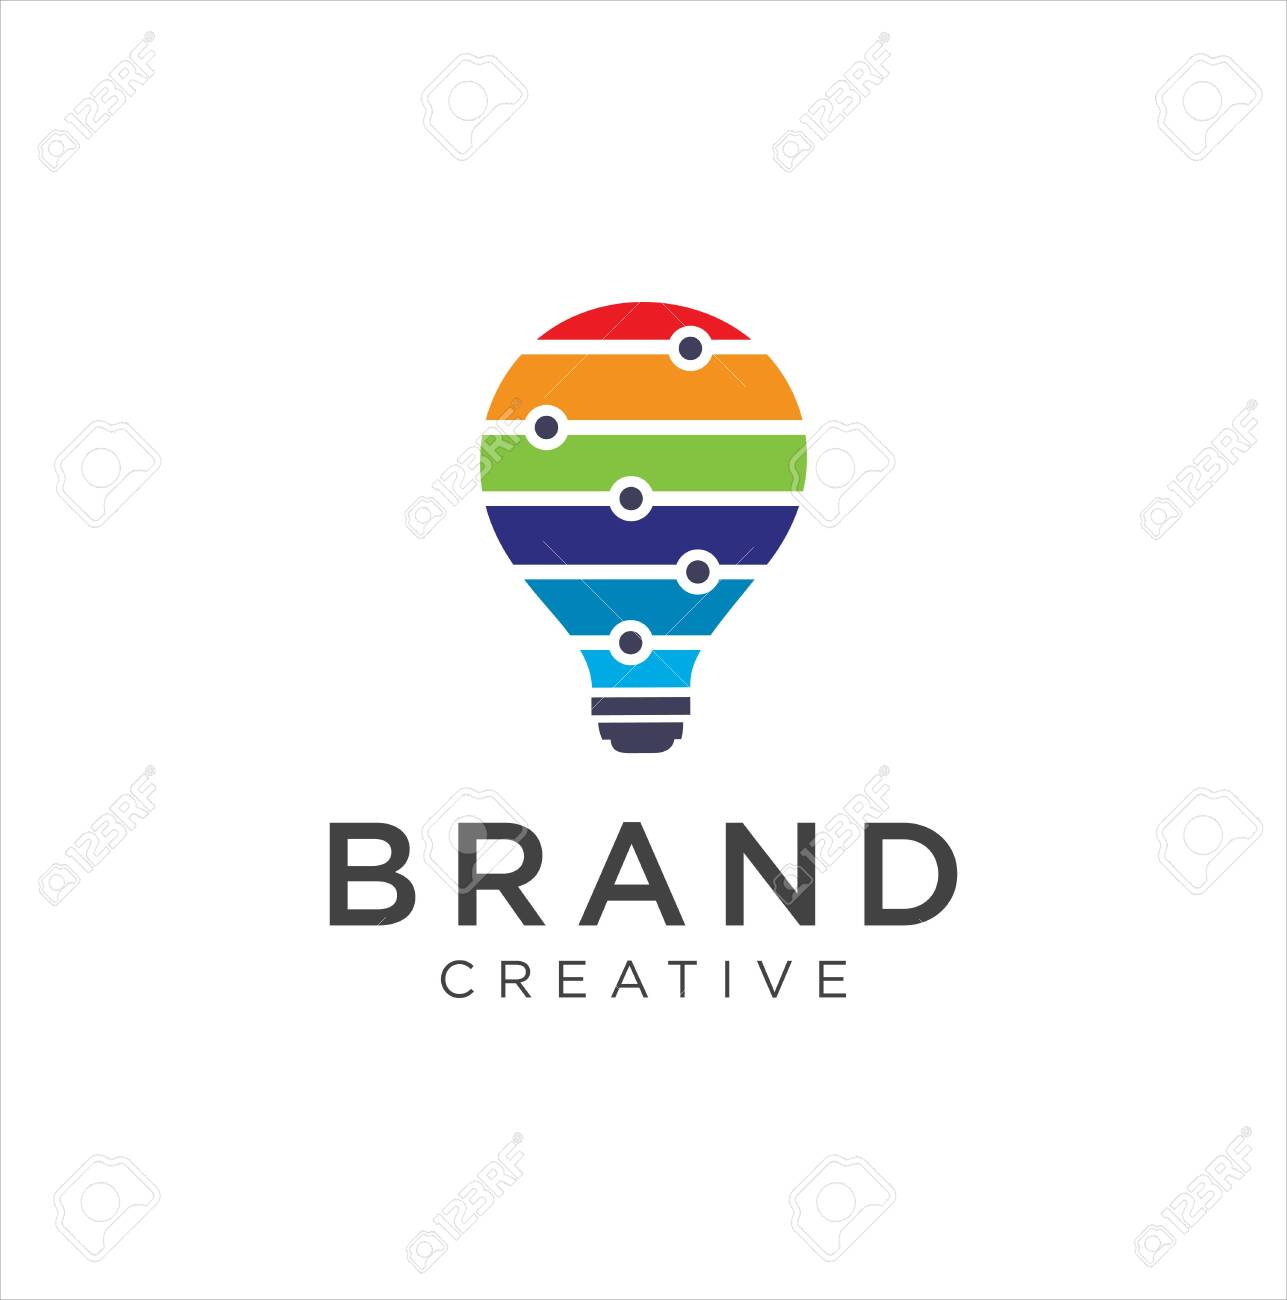 Bulb Logo Design Colorfull Idea Creative Light Bulb Logo Royalty Free Cliparts Vectors And Stock Illustration Image 148837621